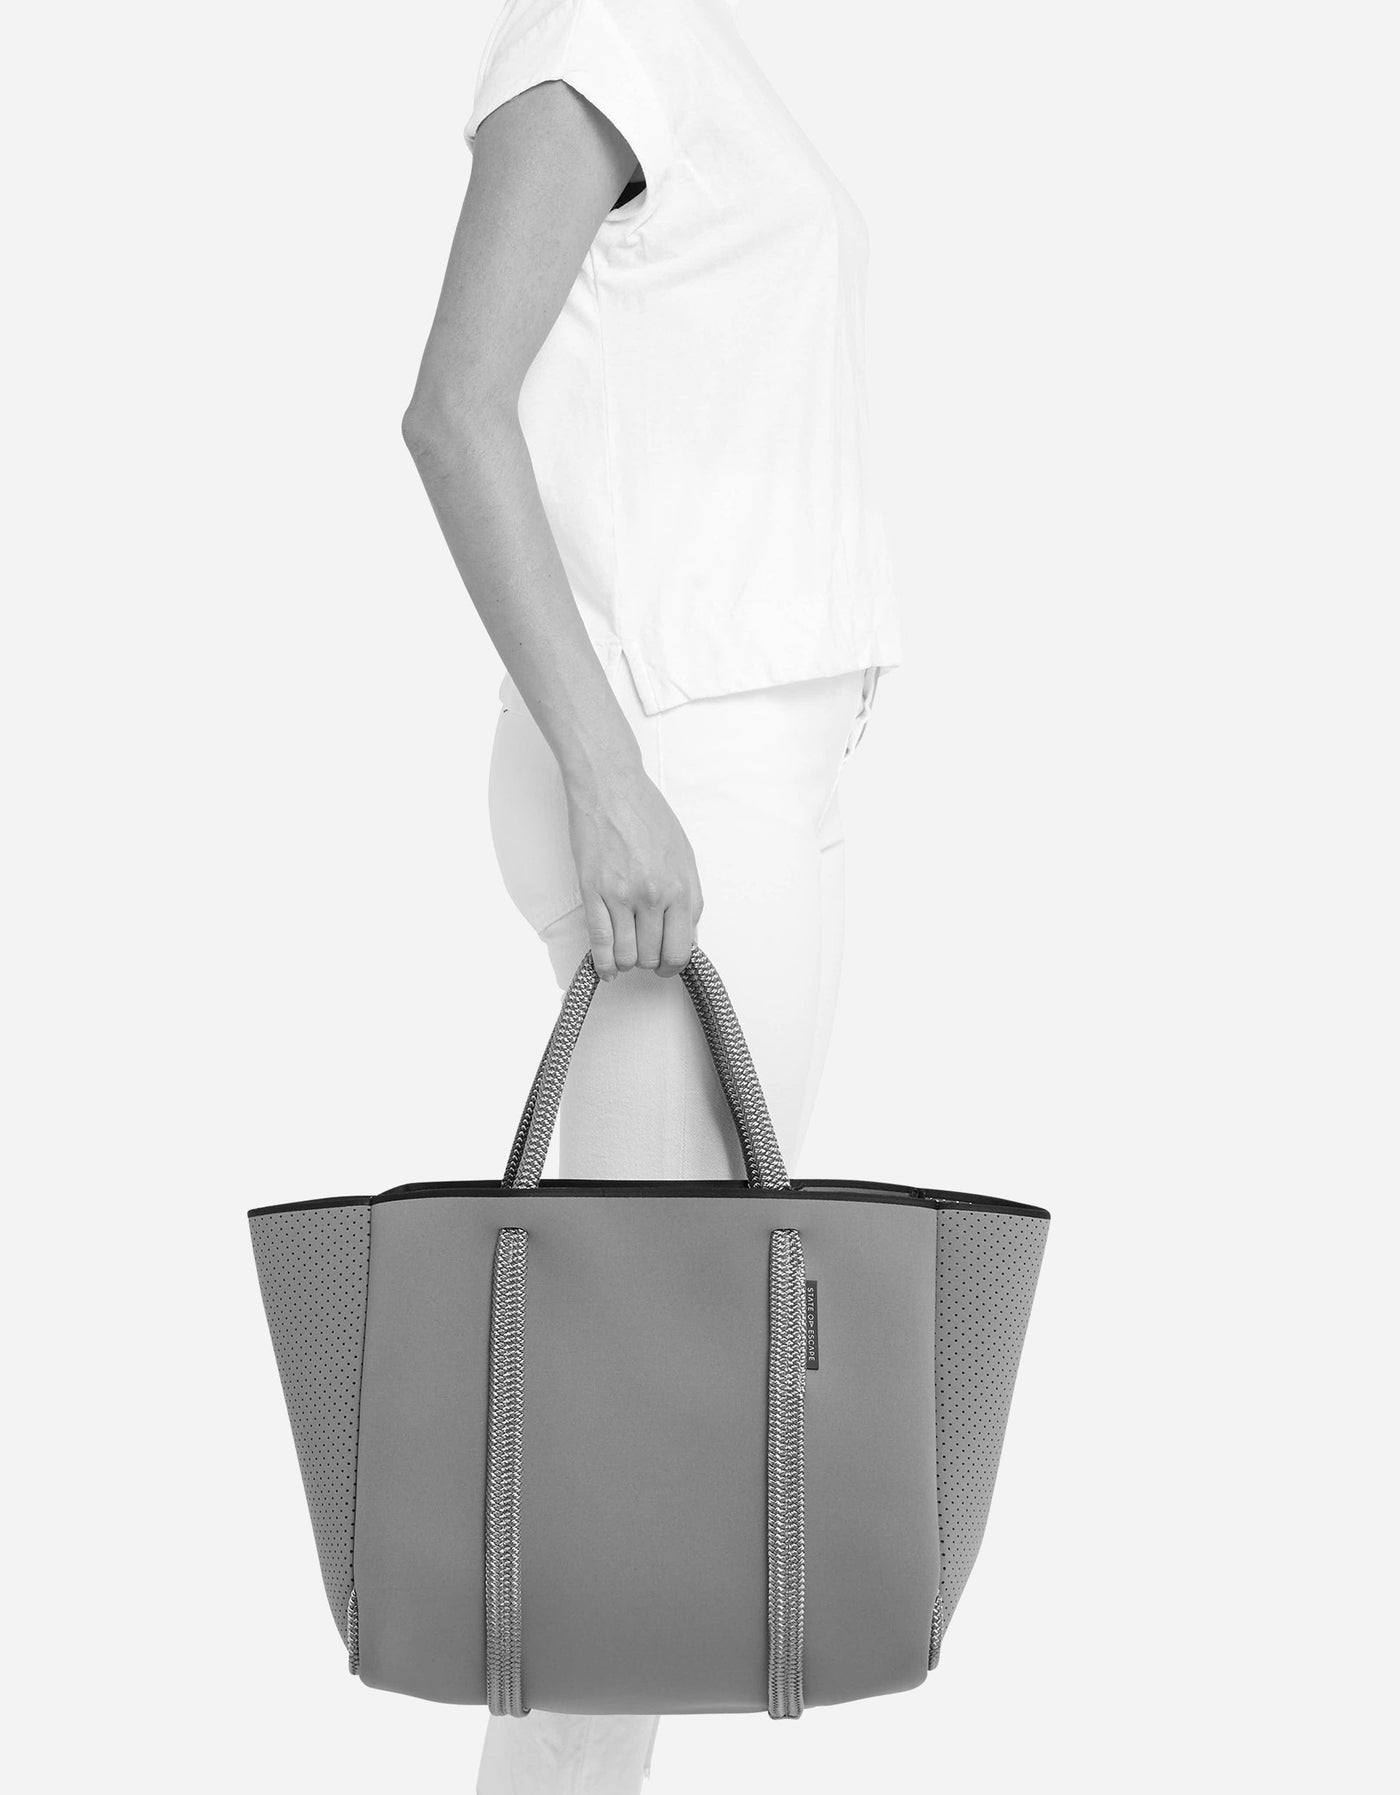 City East West tote in pewter